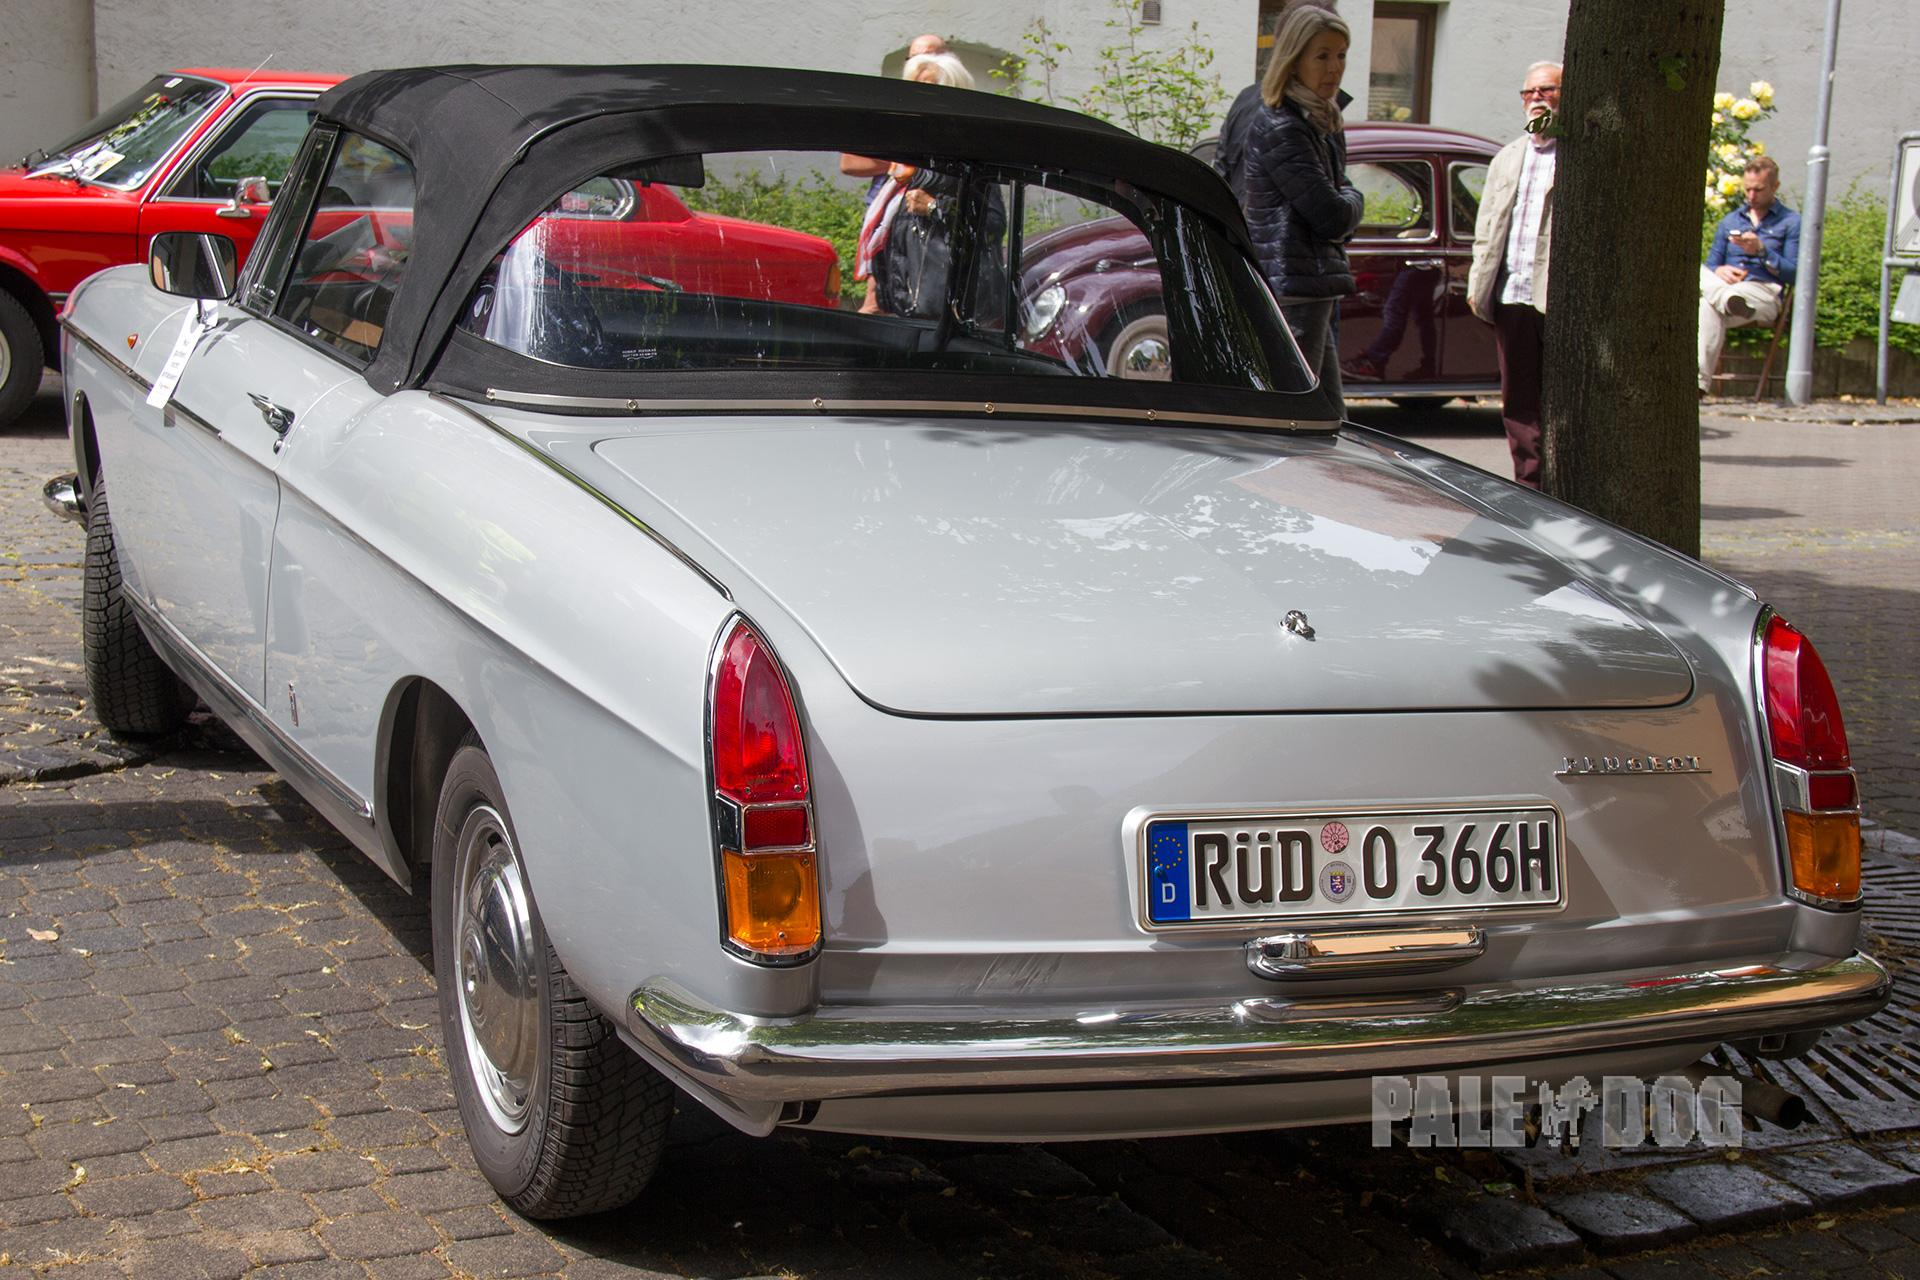 1966 Peugeot 404 Cabriolet Rear View 1960s Paledog Photo Collection